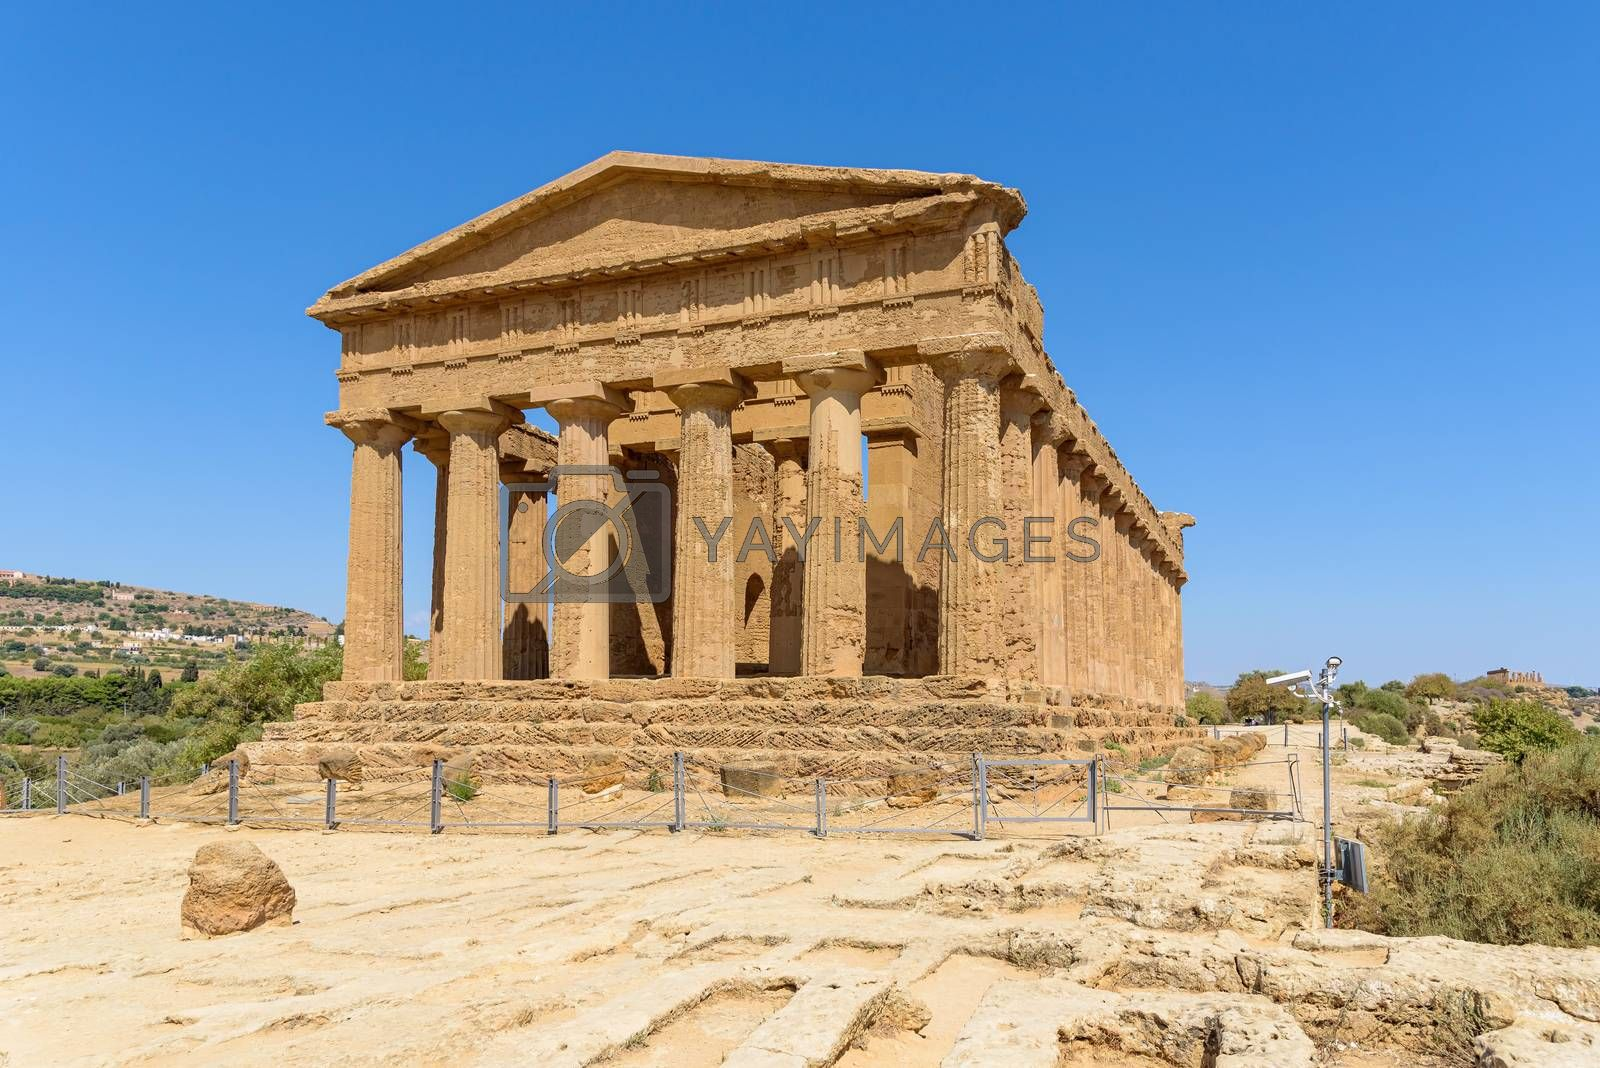 Royalty free image of Temple of Concordia in the Valley of the Temples in Agrigento by mkos83